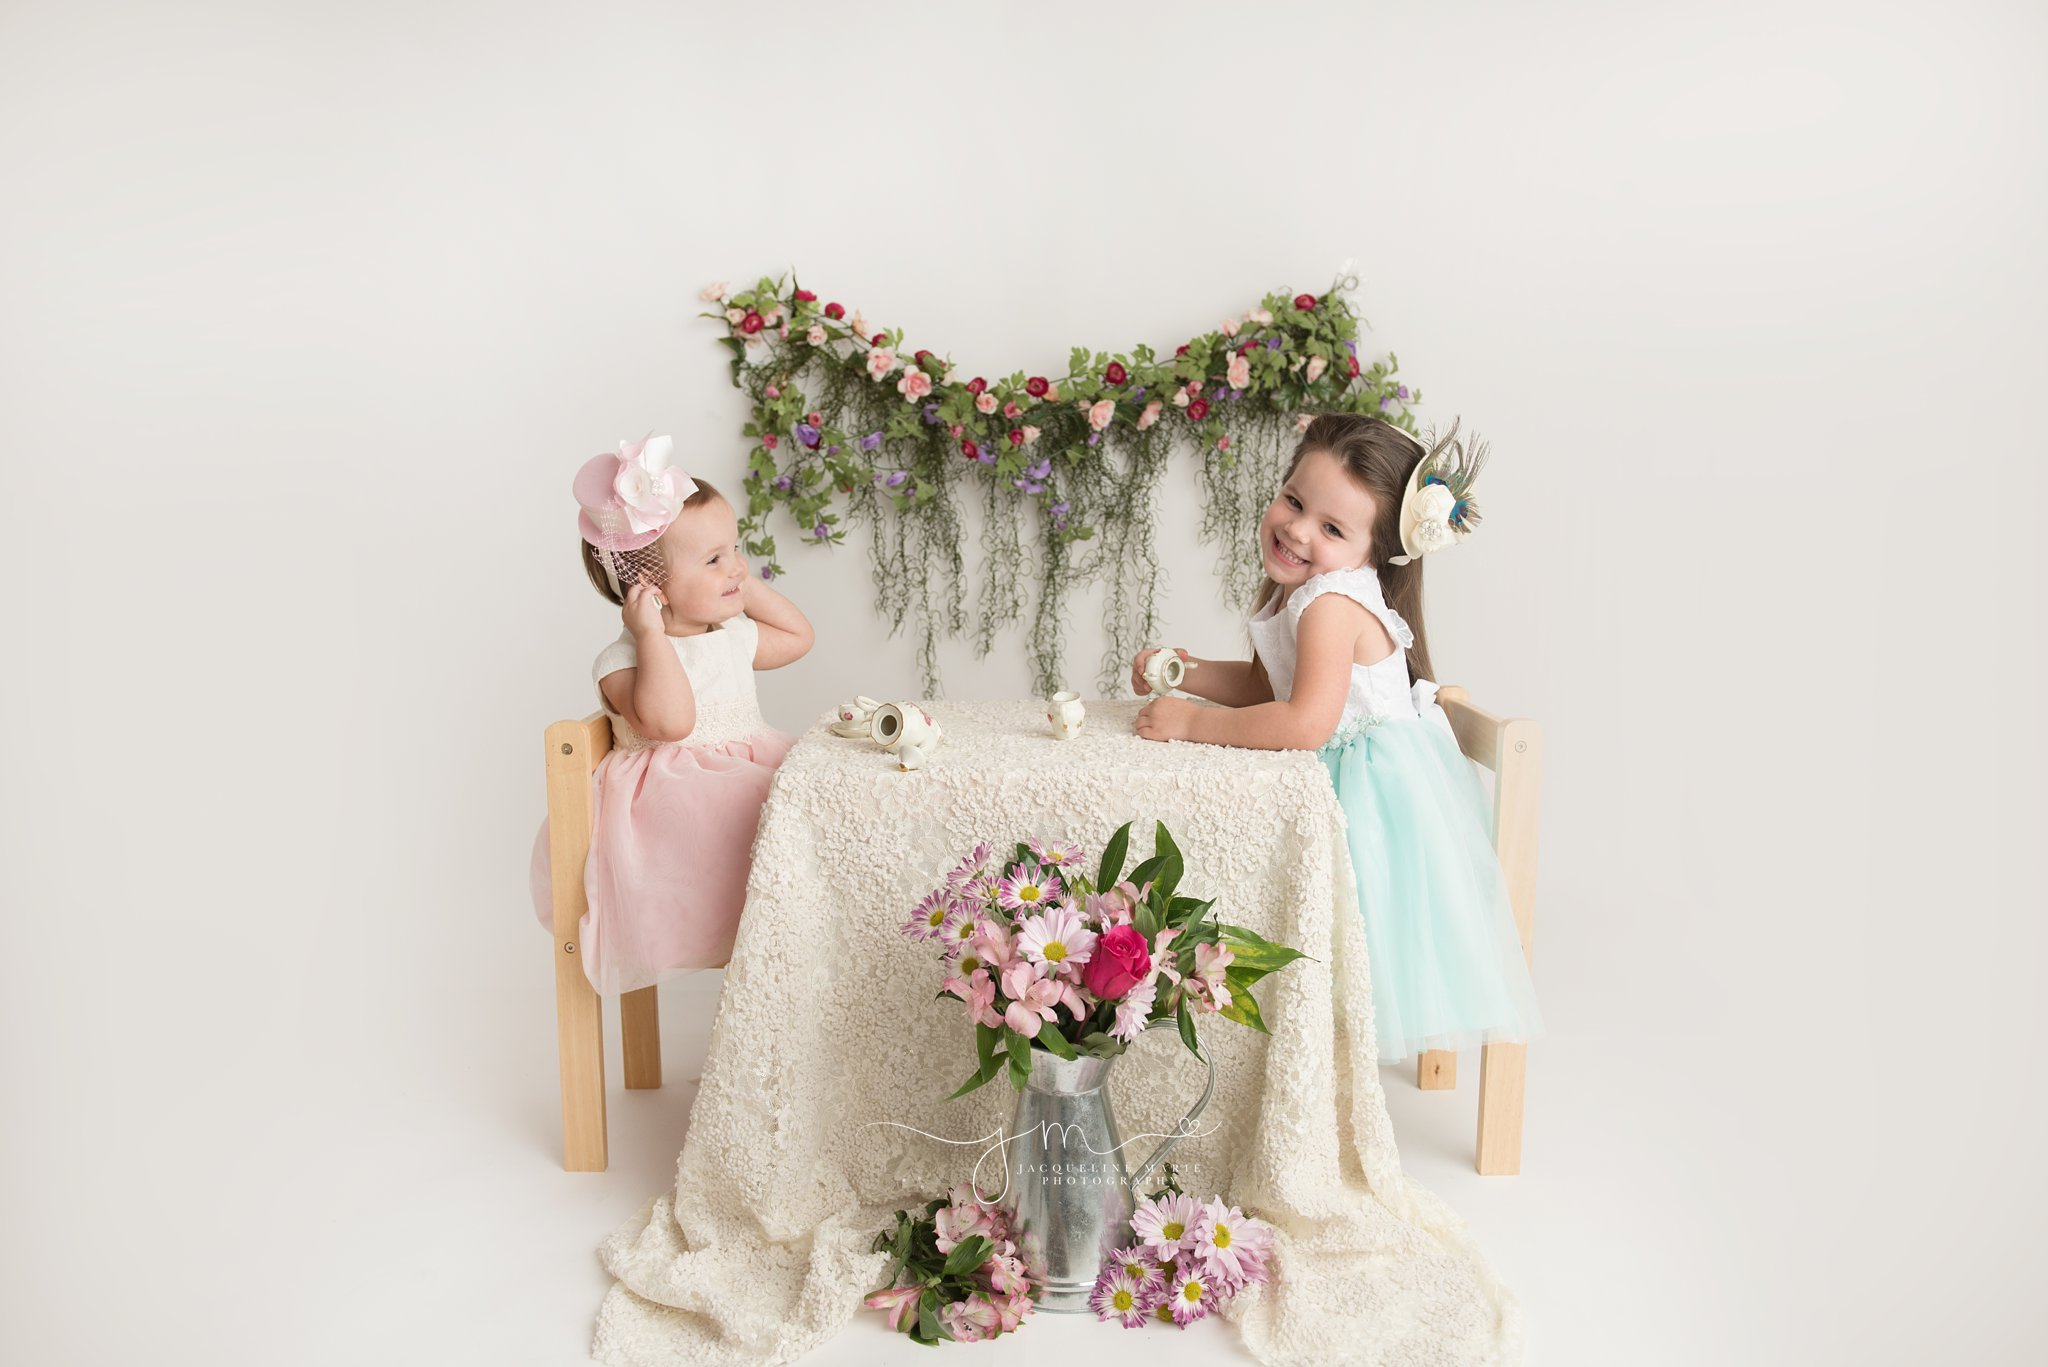 jacqueline marie photograpy in columbus ohio features vintage tea party for sisters